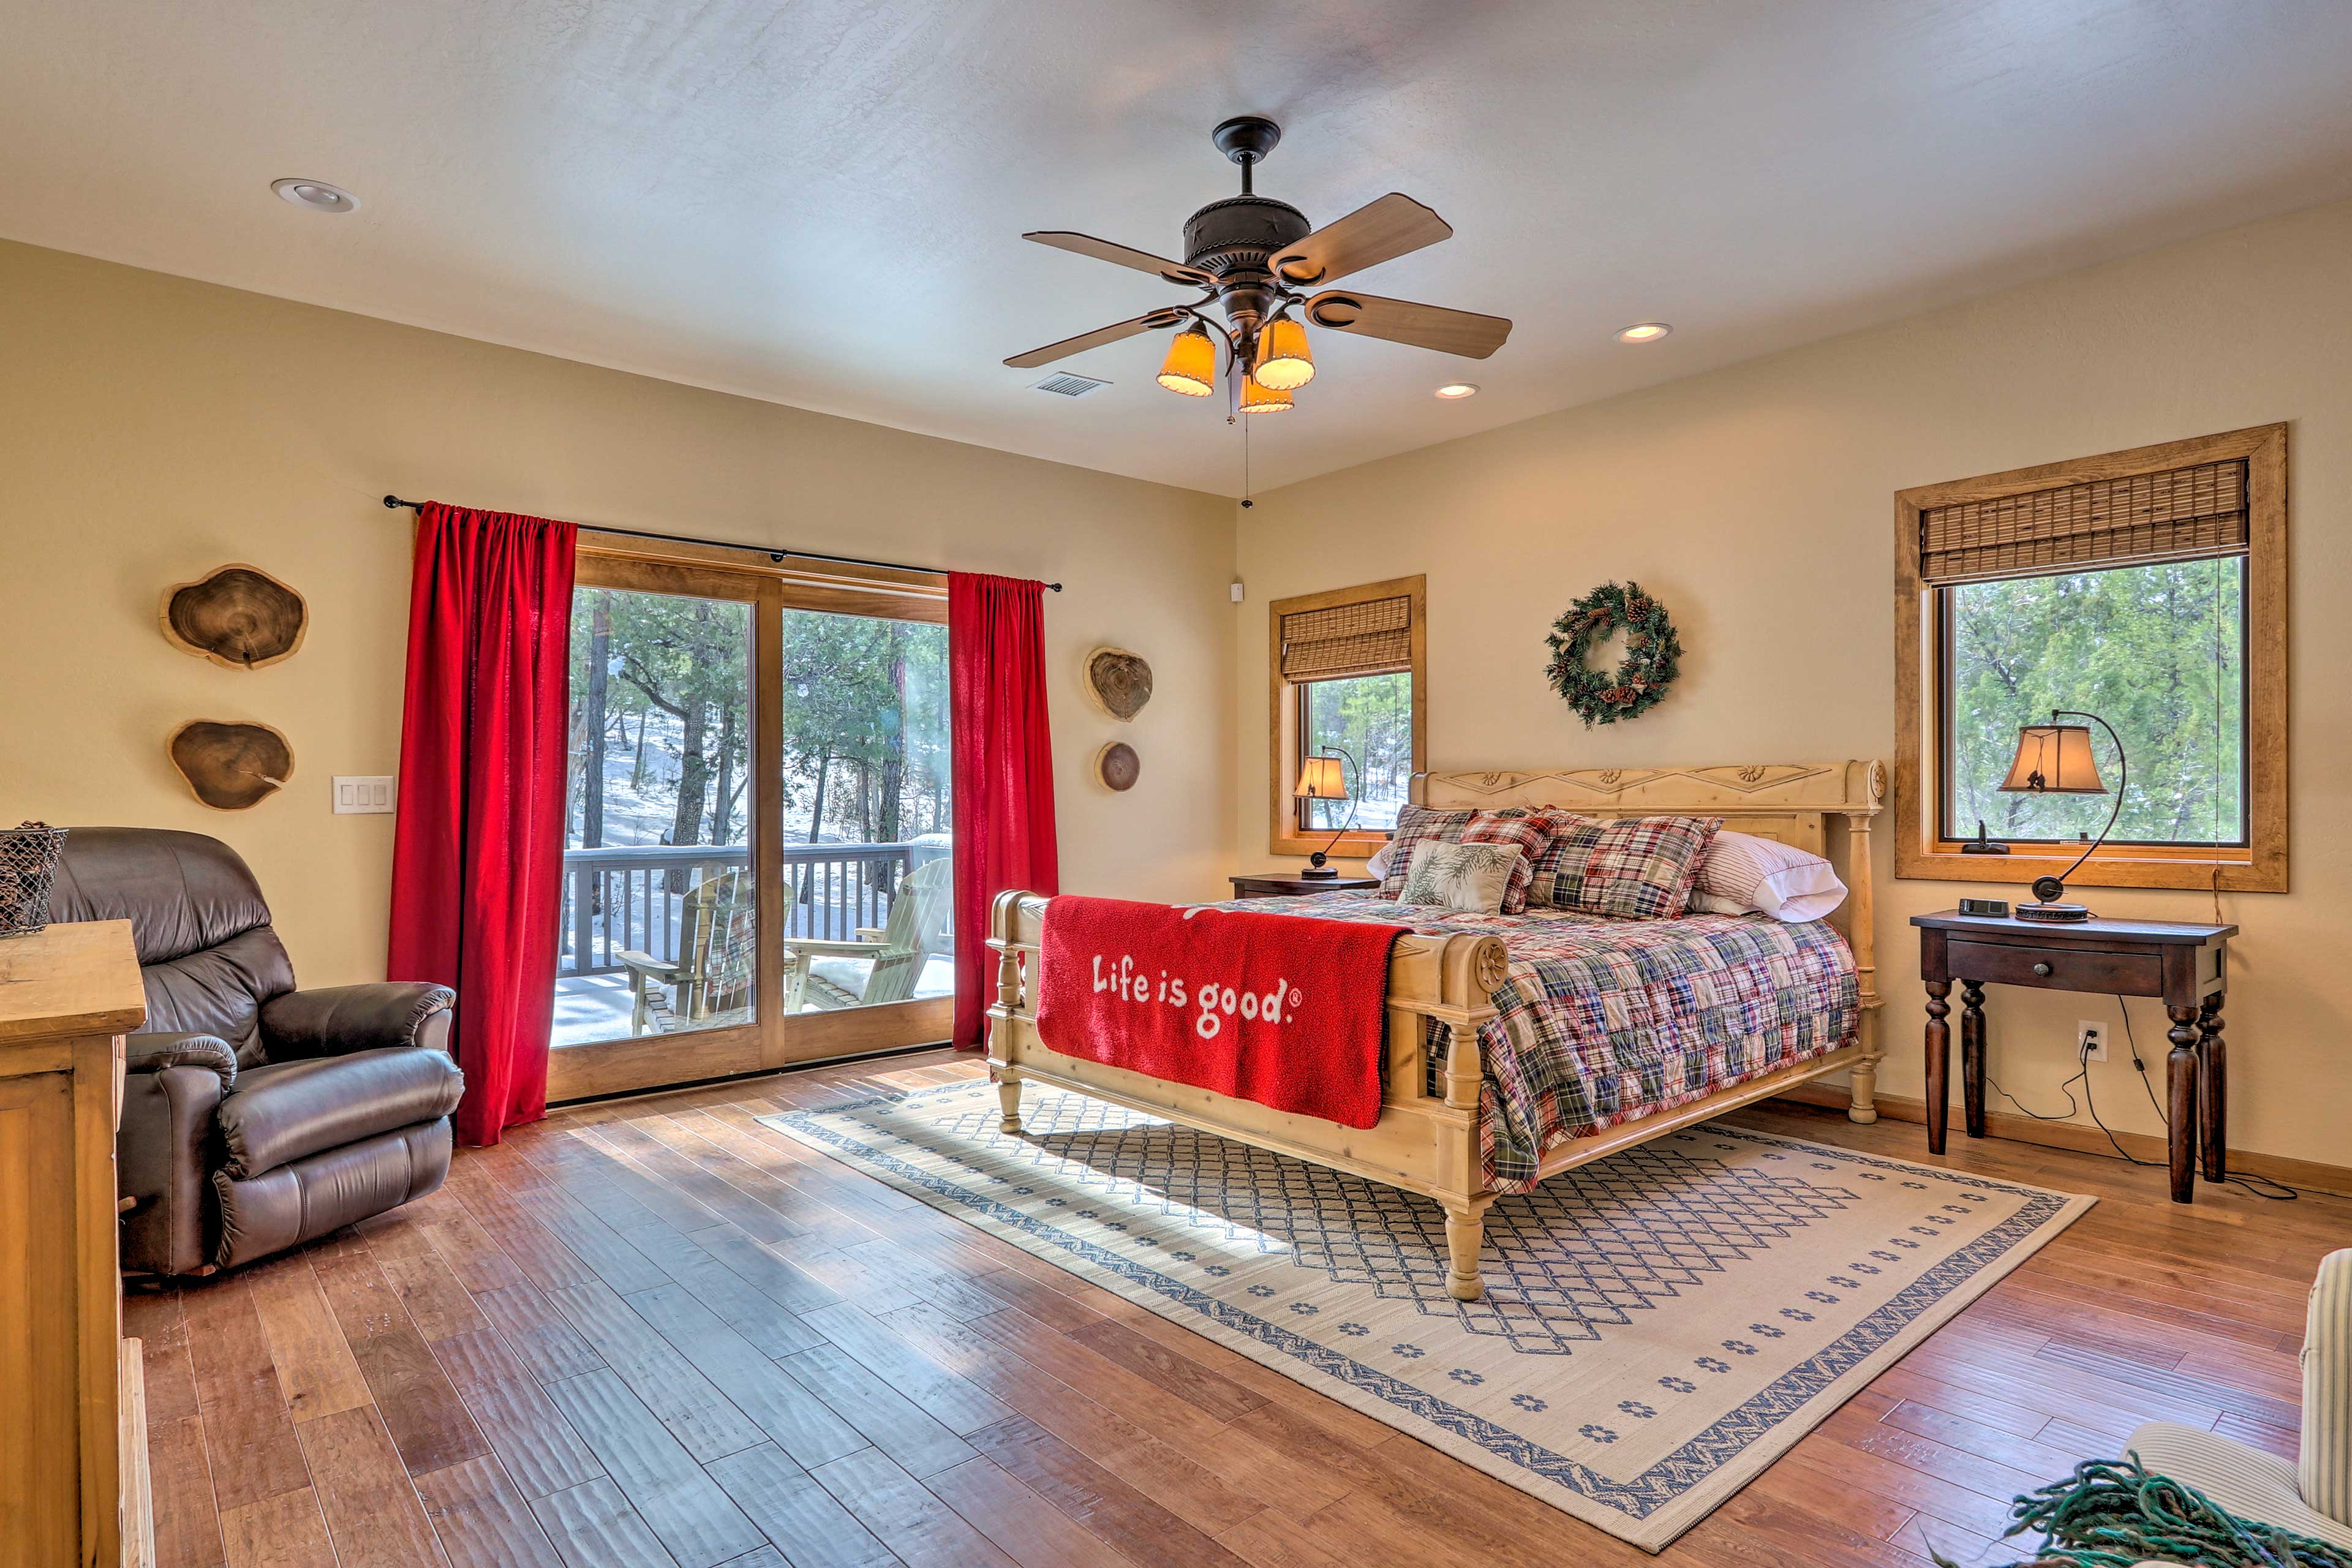 Claim the master bedroom for its deck access and California king bed.